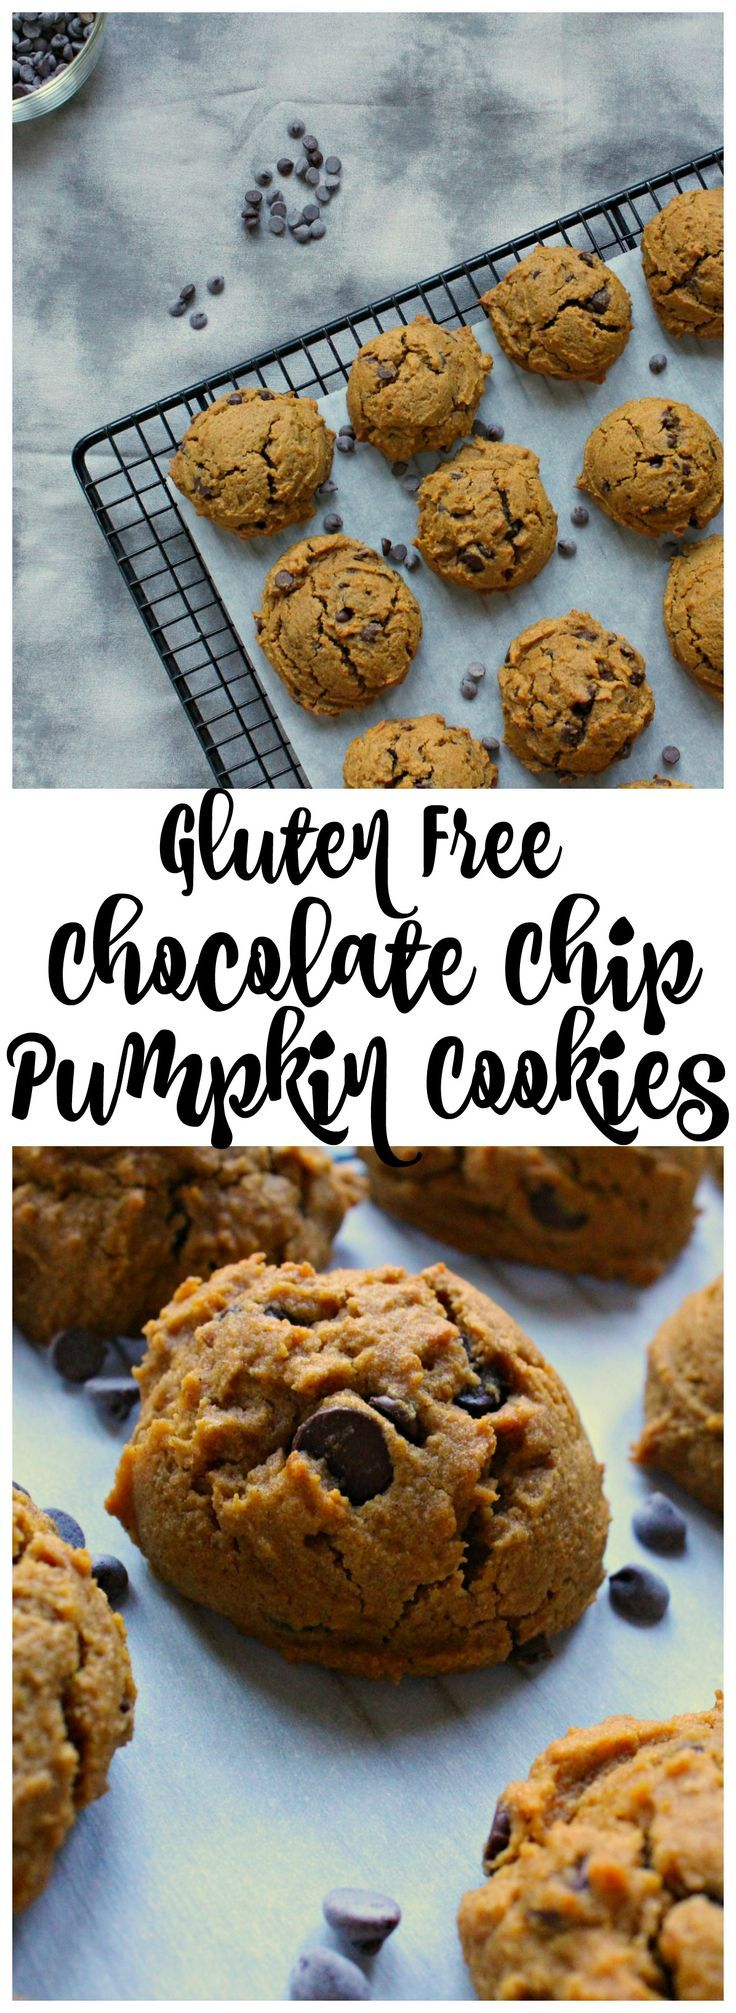 13 healthy recipes Gluten Free chocolate chip cookies ideas